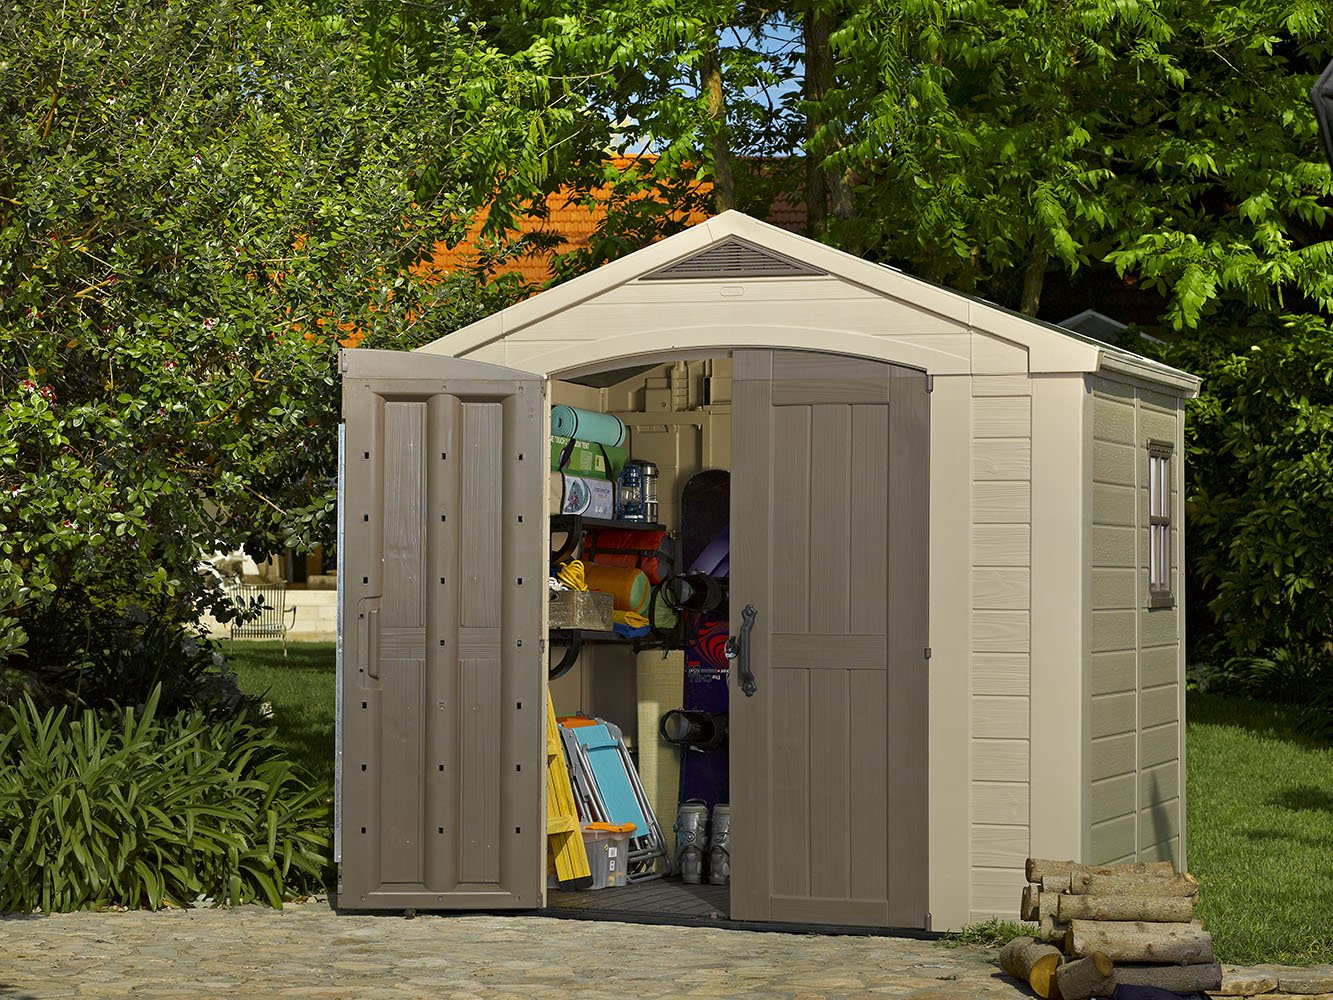 amazoncom keter factor large 8 x 6 ft resin outdoor backyard garden storage shed storage sheds garden outdoor - Garden Sheds 6 X 6